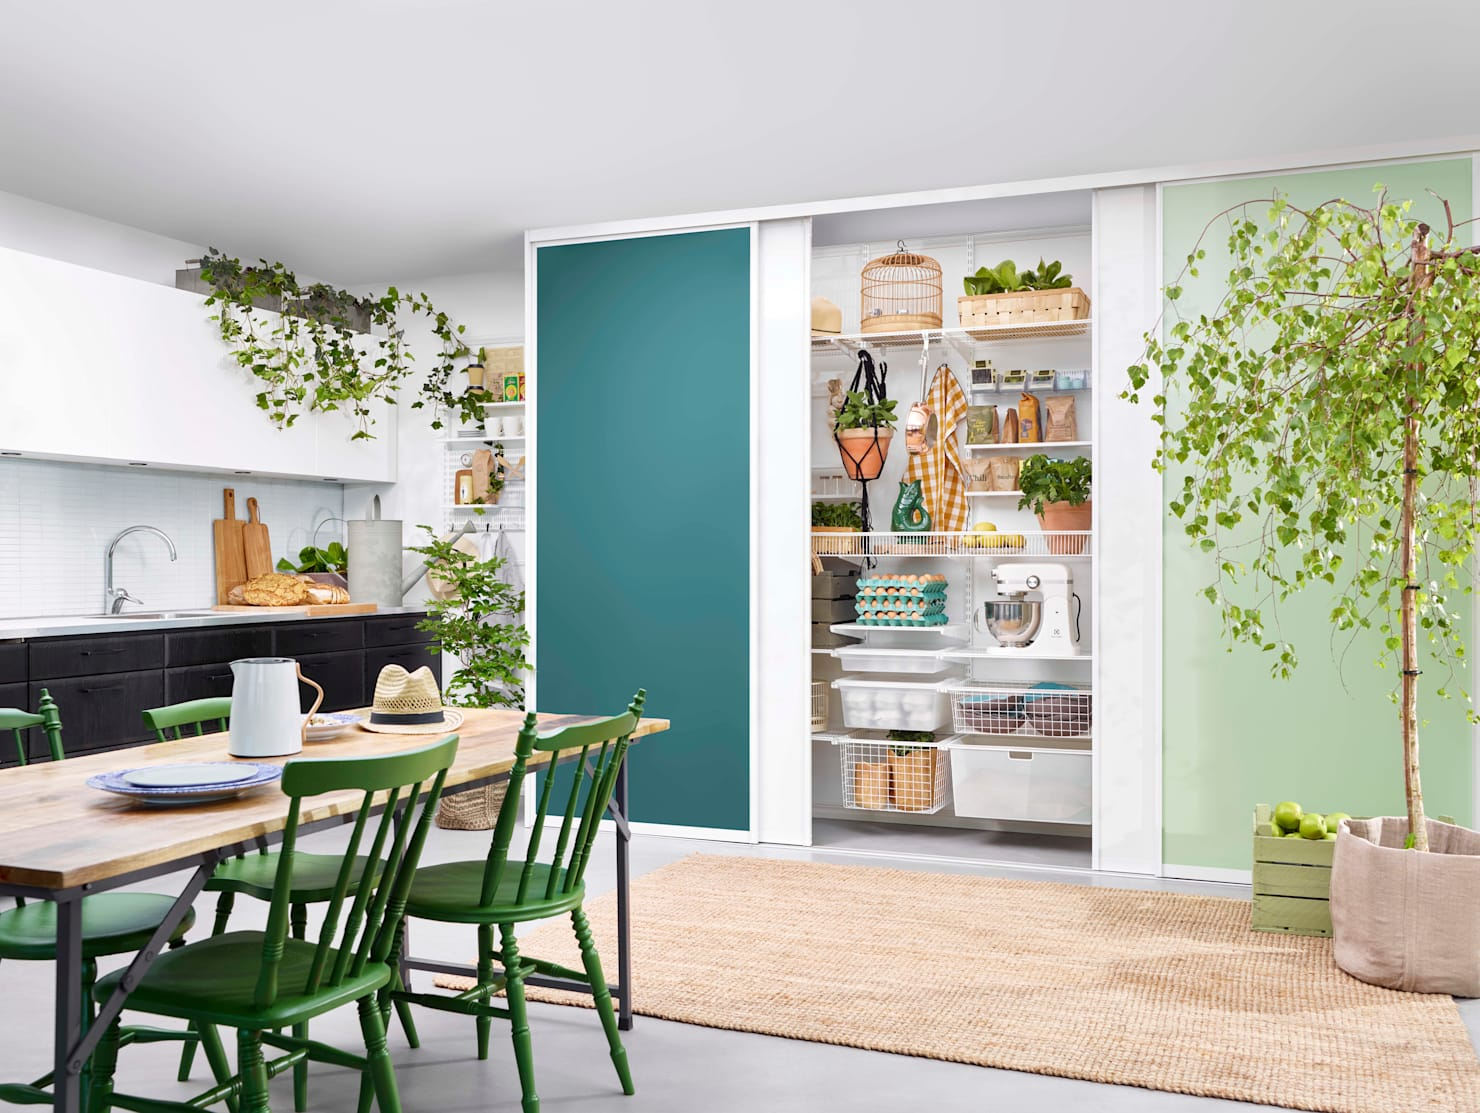 6 genius storage ideas for your kitchen